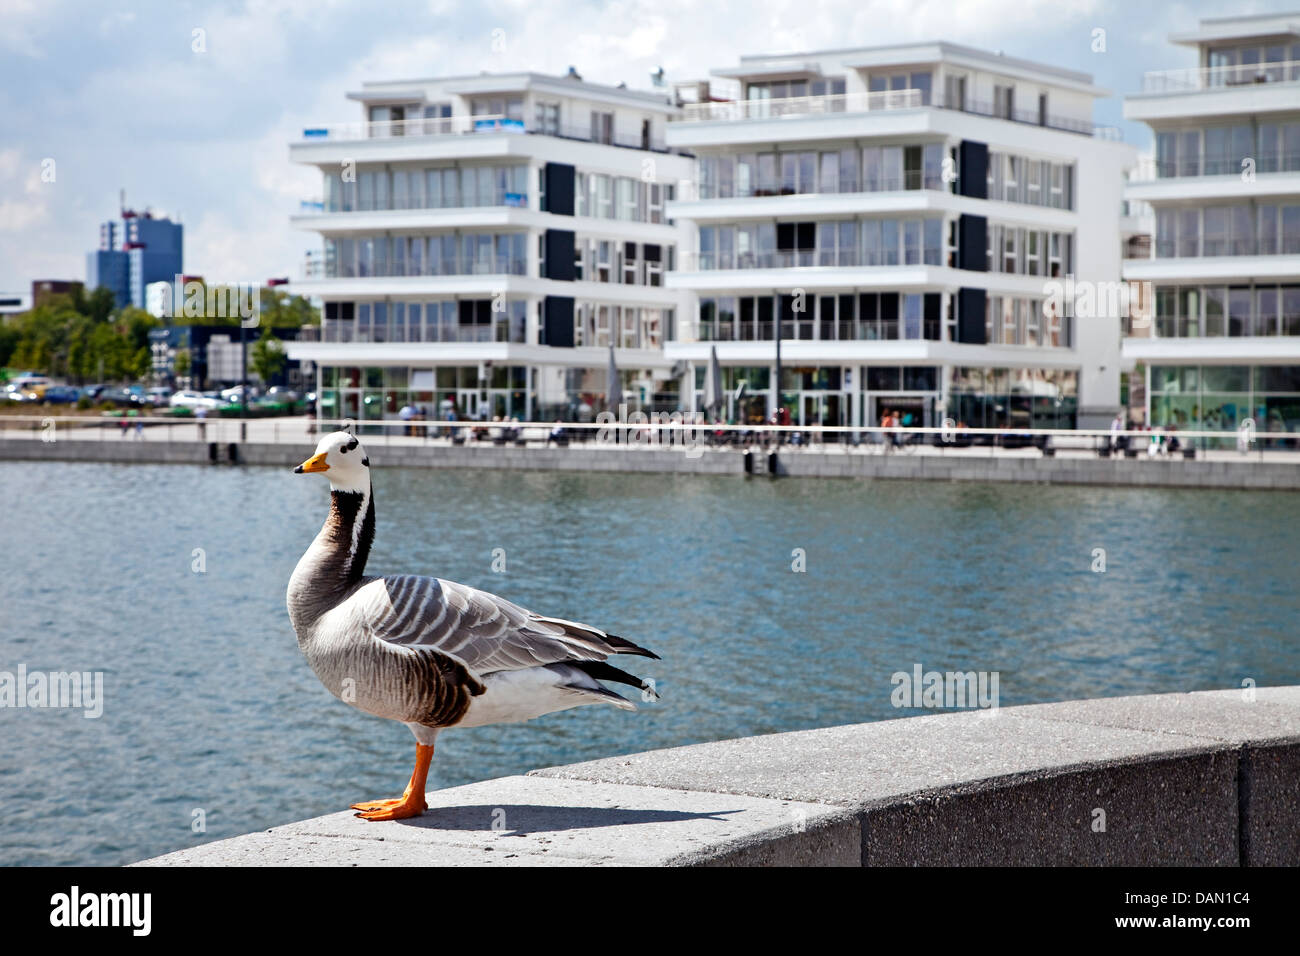 bar-headed goose (Anser indicus), standing on a wall in front of the medical centre at the Lake Phoenix, Germany, - Stock Image